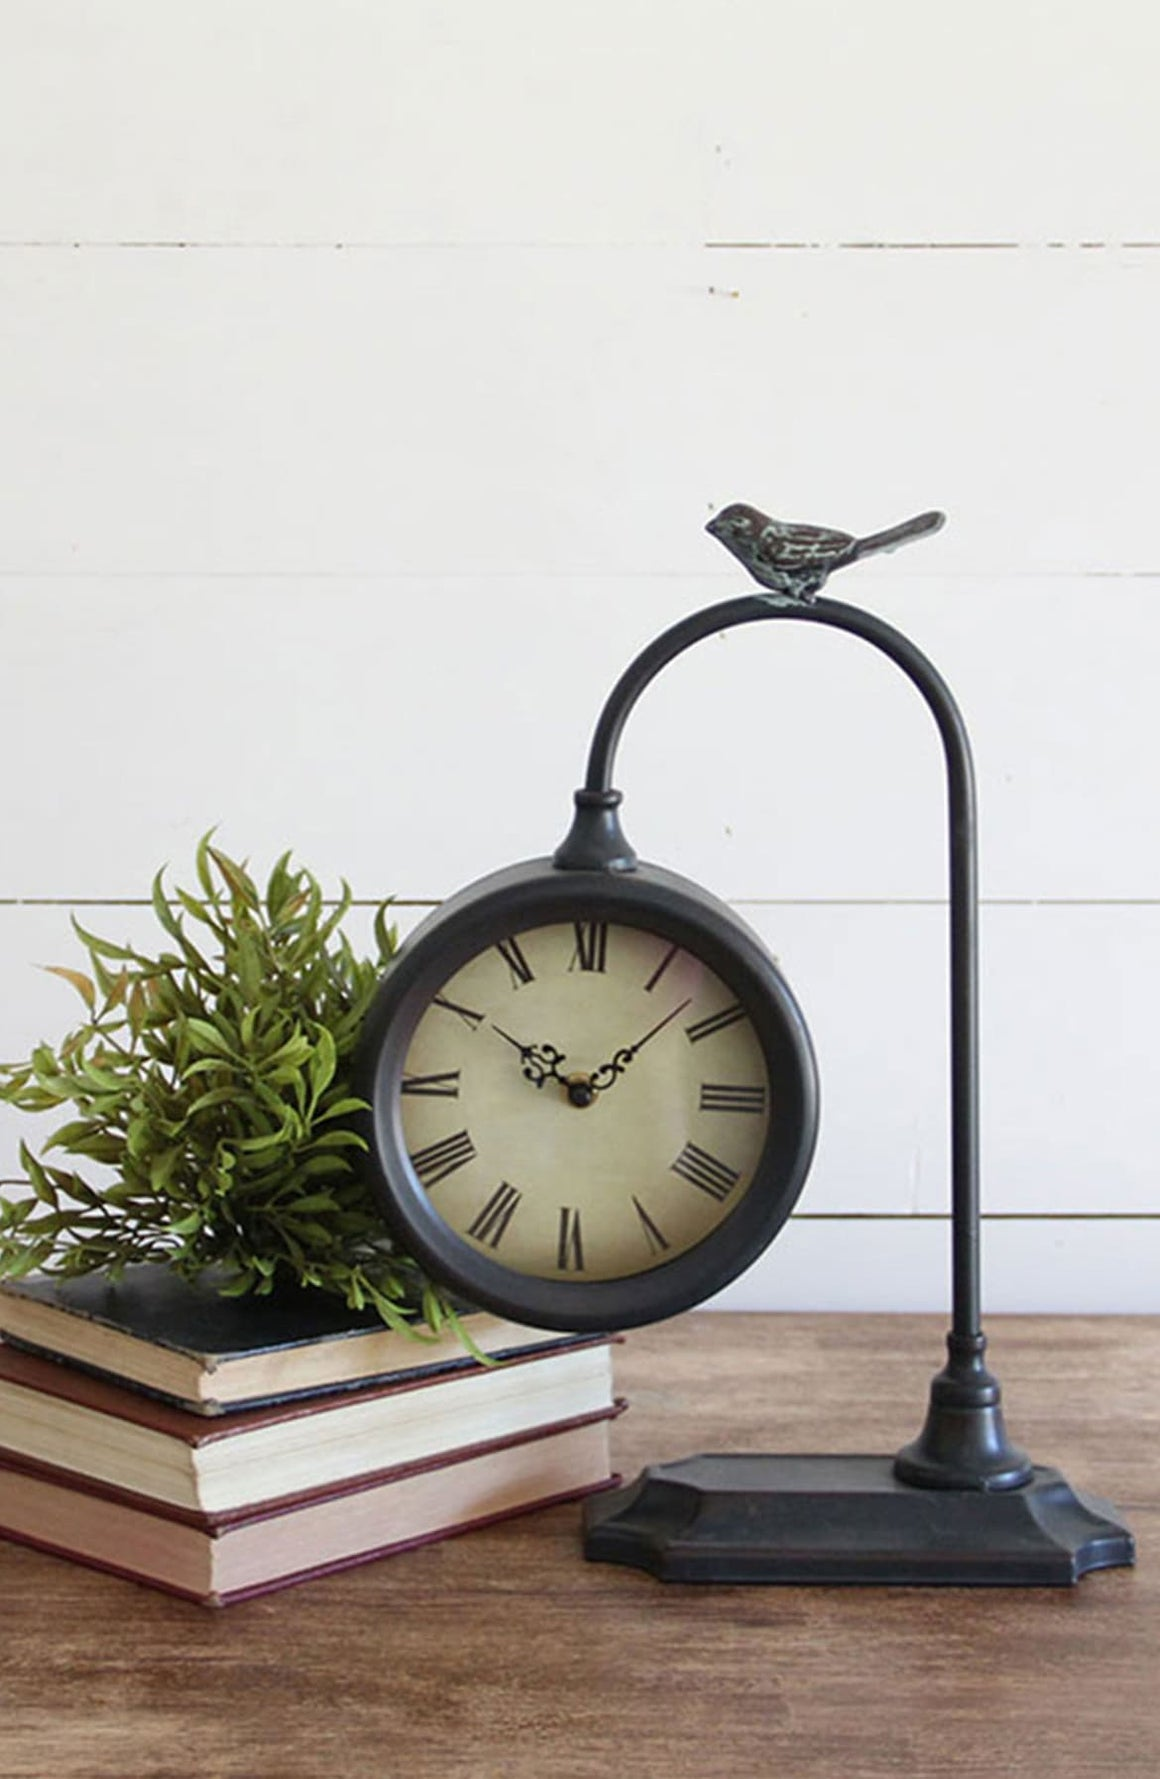 Tabletop Clock w/bird